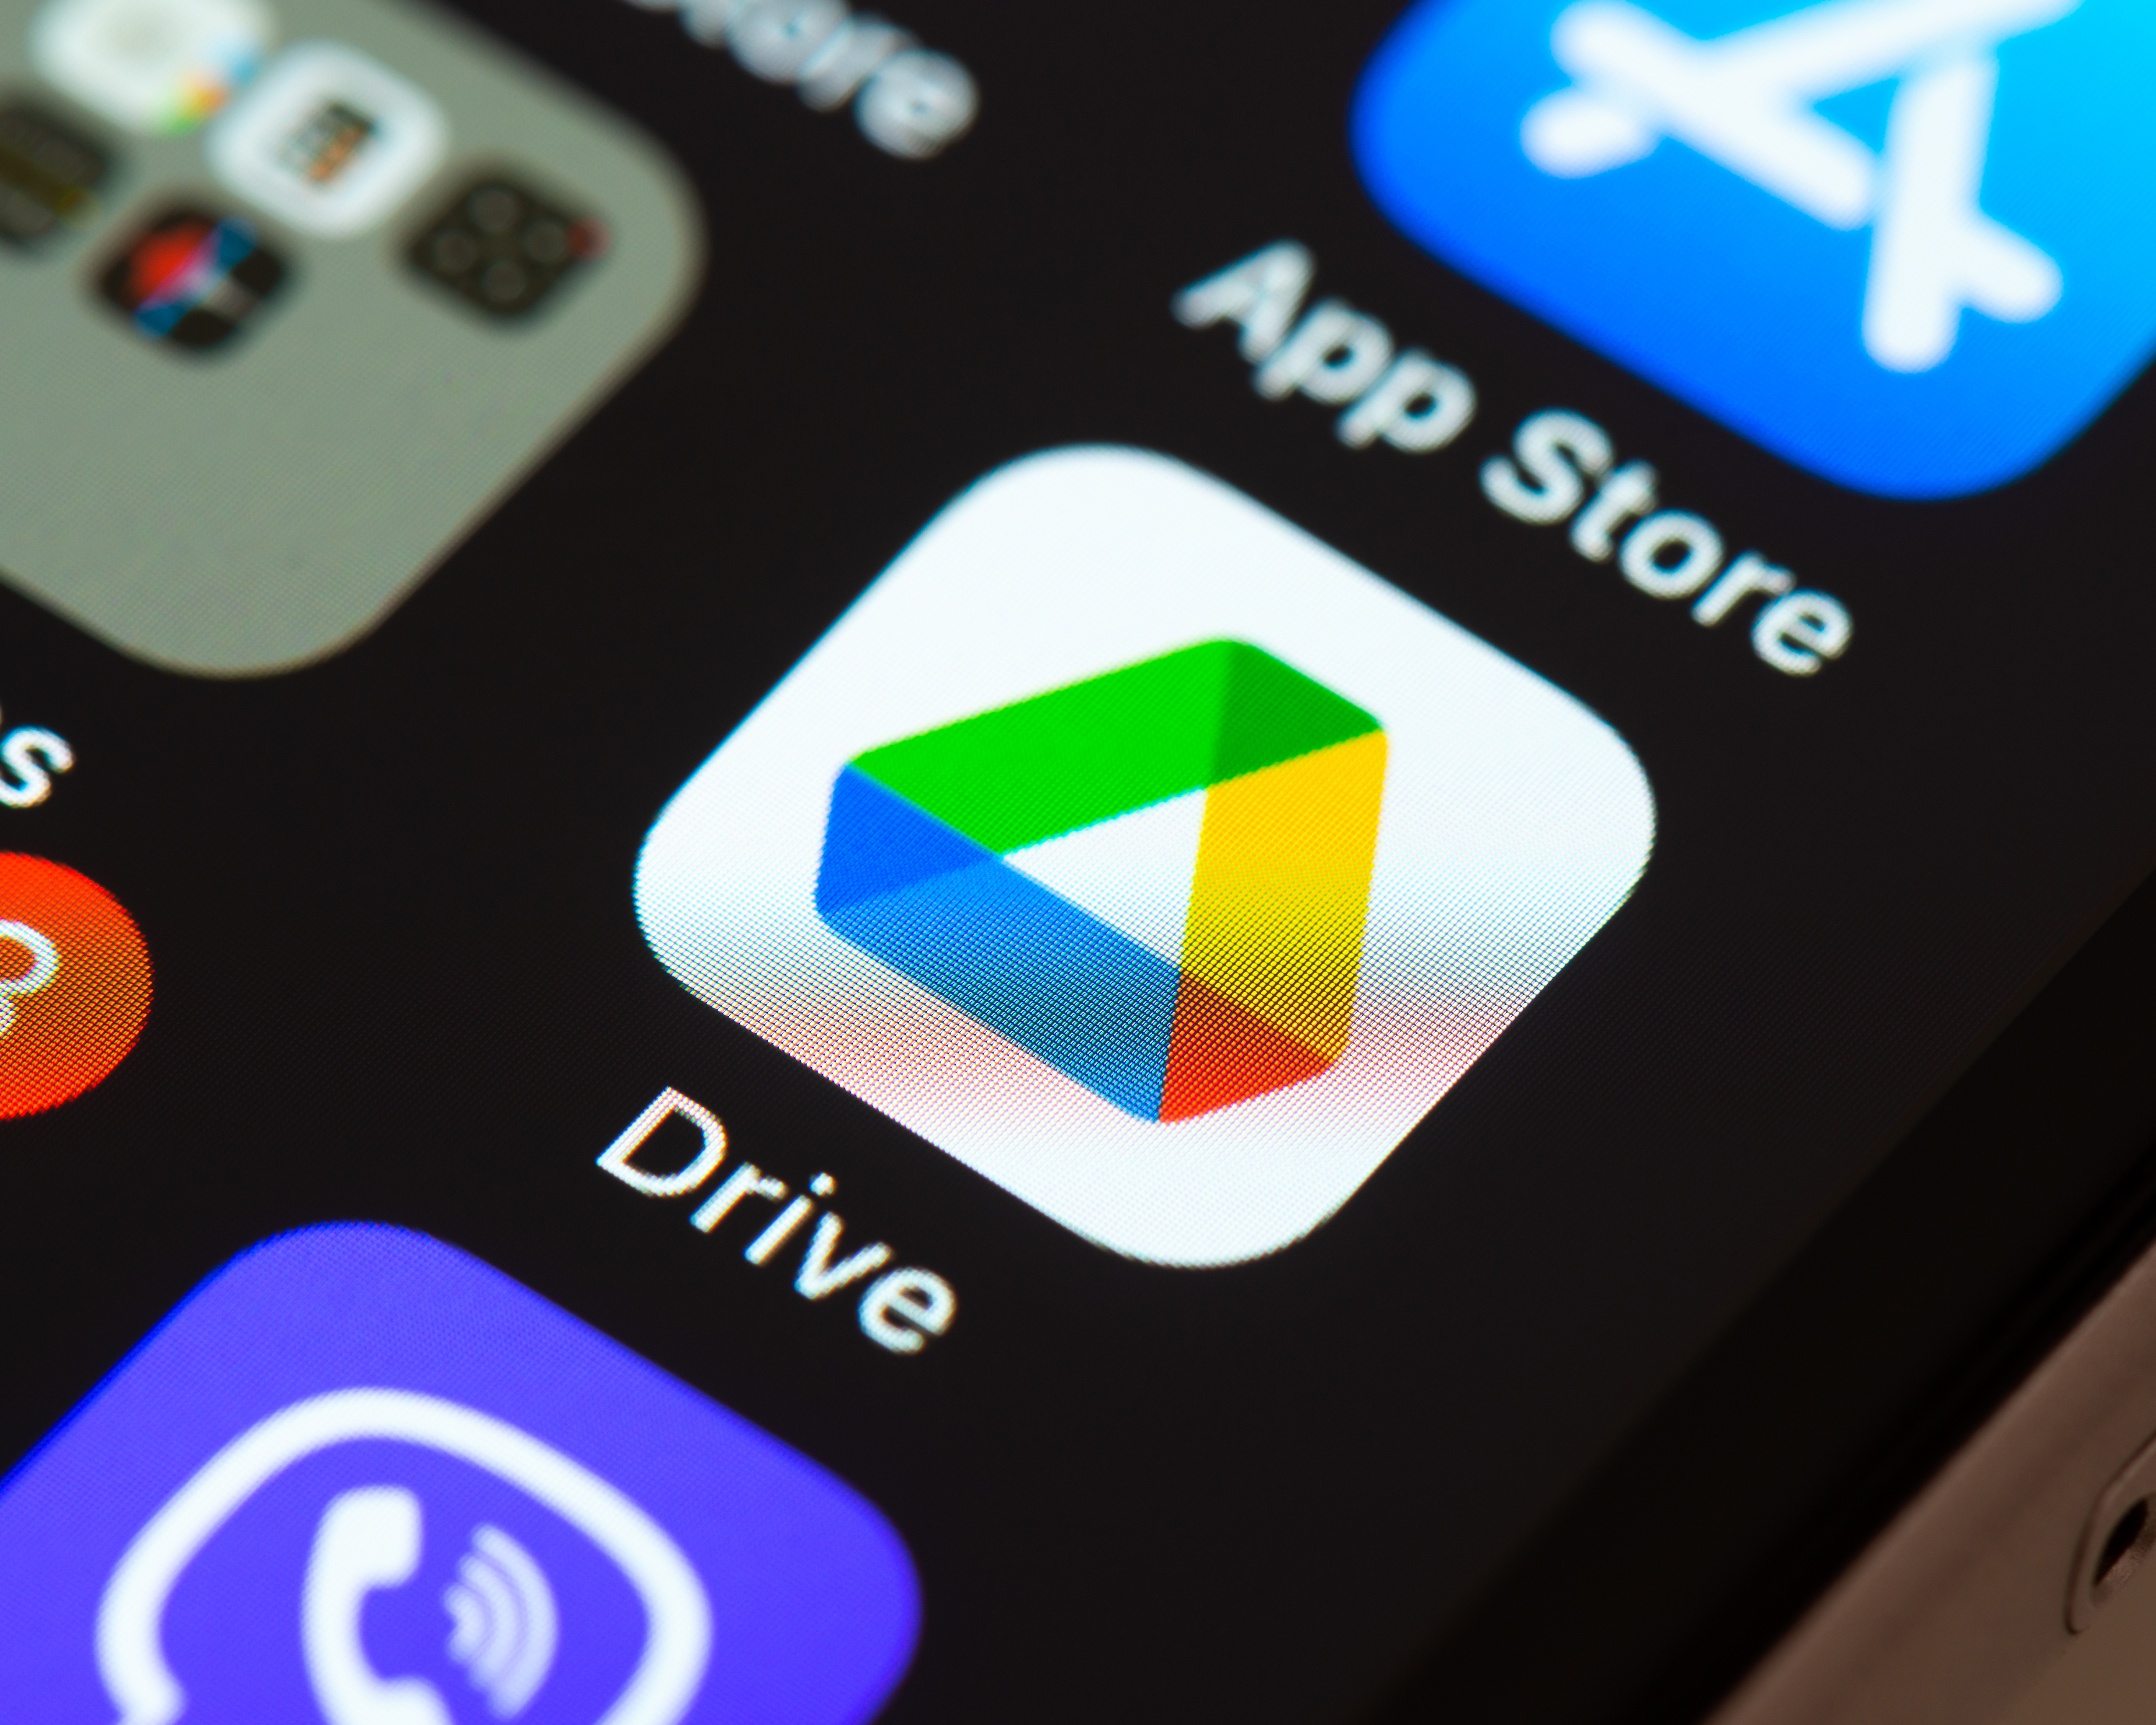 Google Drive app icon on Apple iPhone screen.